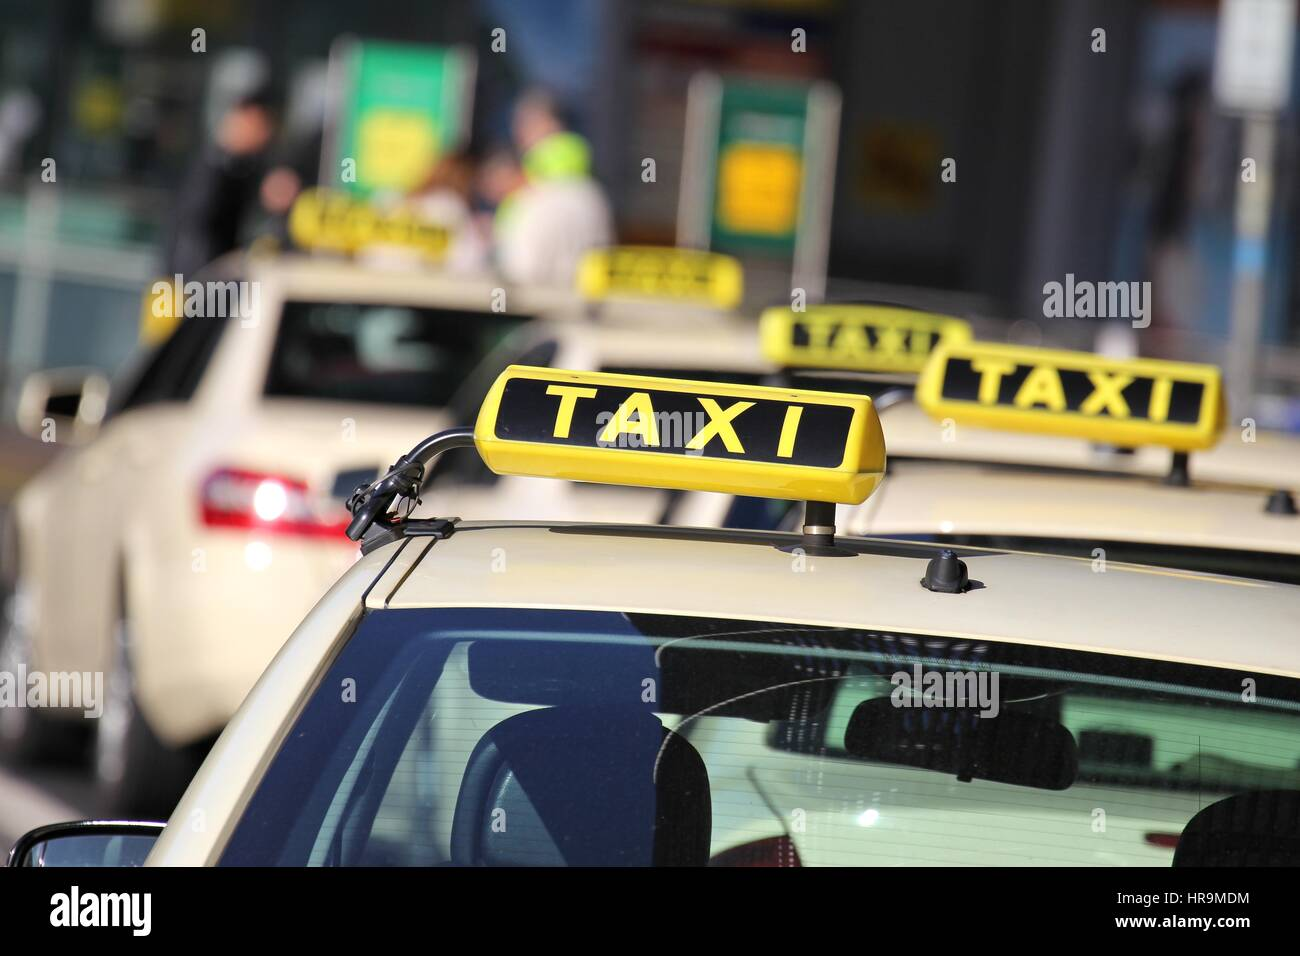 German taxi cabs waiting for passengers Stock Photo